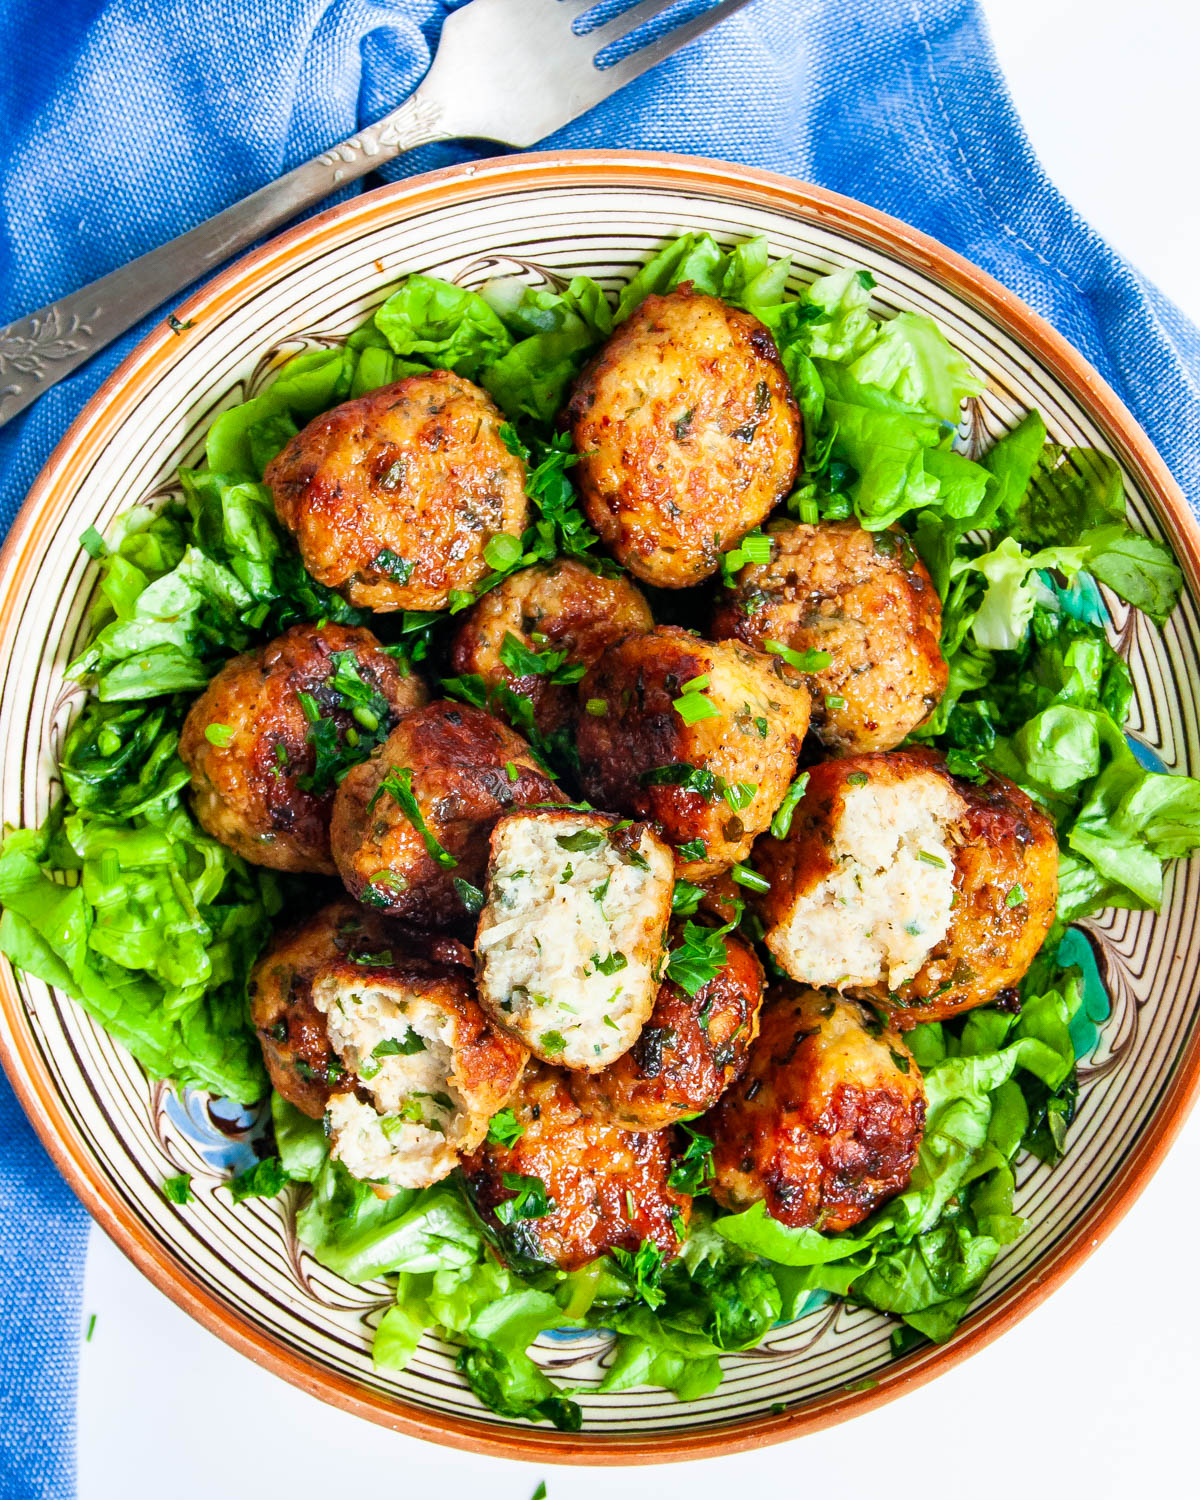 Firecracker Chicken Meatballs over a lettuce salad on a plate